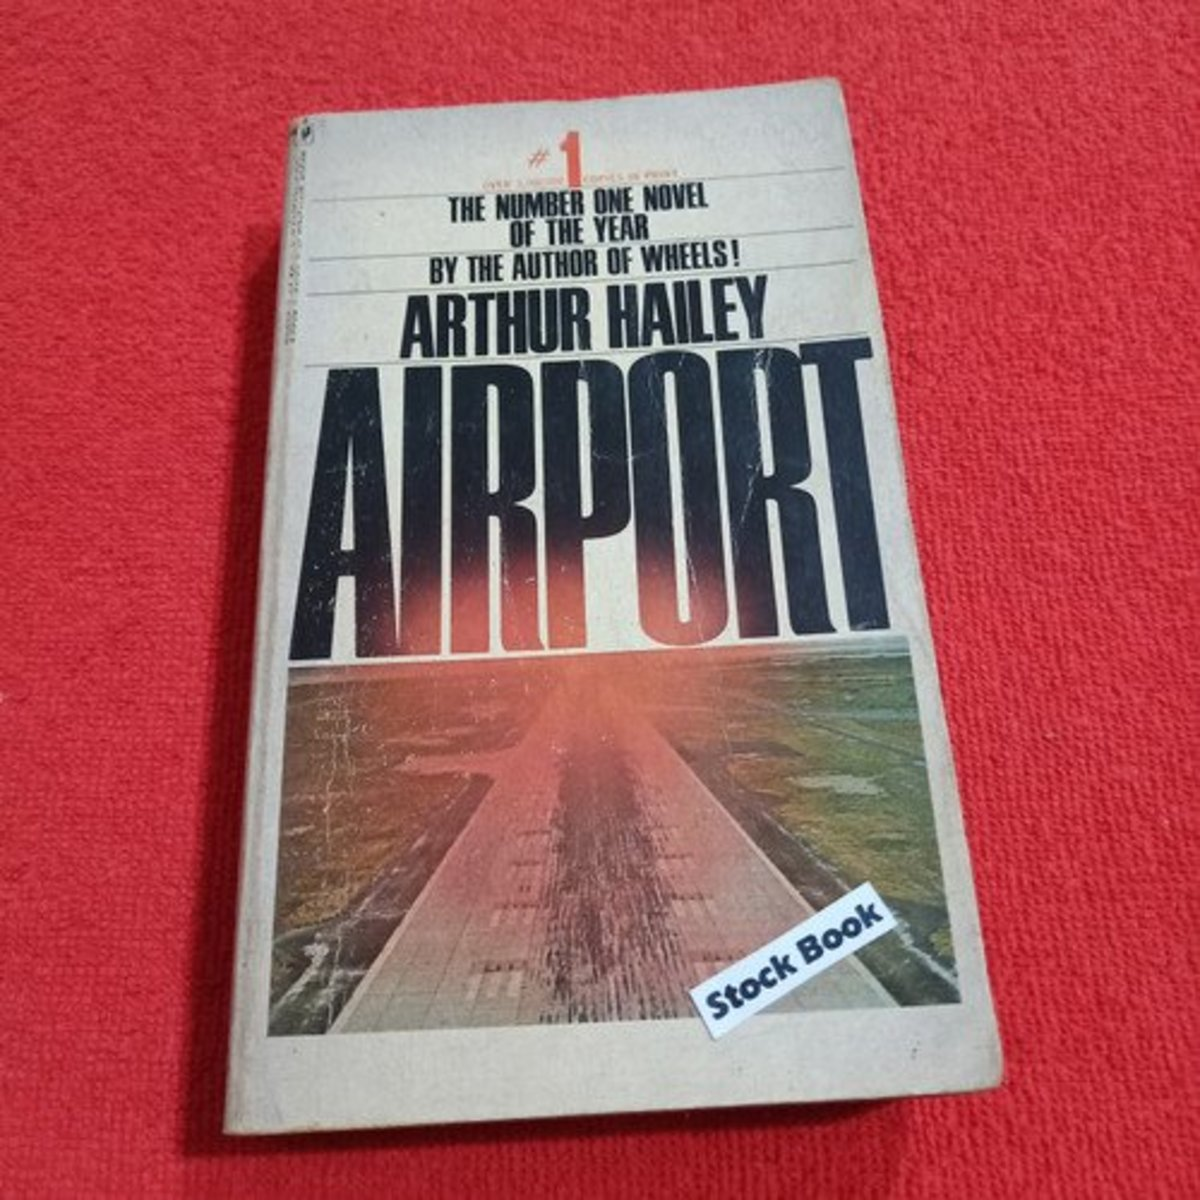 In 1968, Arthur Hailey's cliff-hanging suspense novel—Airport—was the best-selling fiction book.